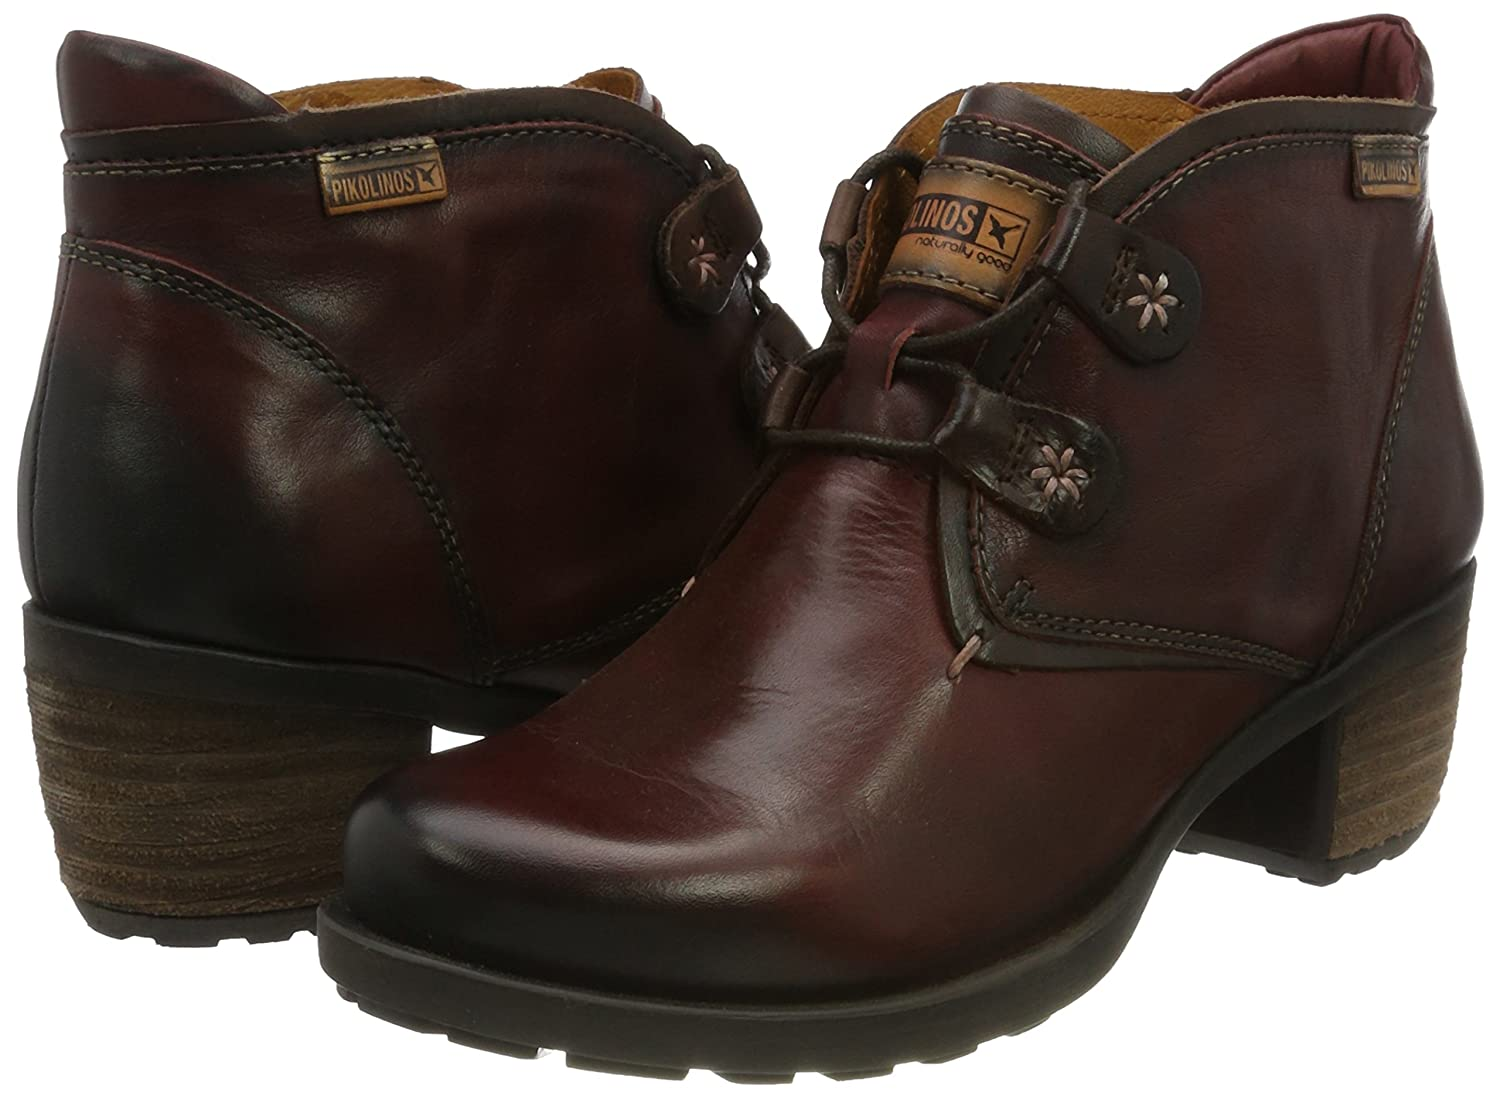 Fashionable Boots Booties Pikolinos Le Mans 838 8657 Women Olmo US Online